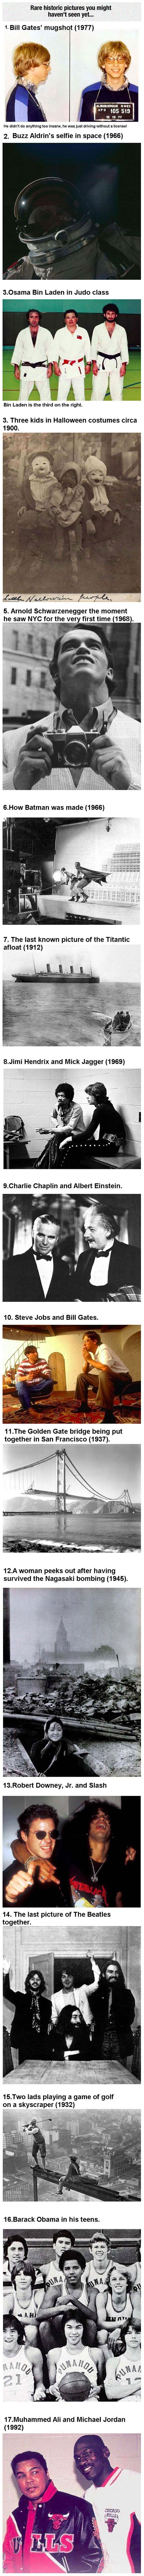 "Some rare historical photographs...bill gates looking like he is ""baaad"" now.  He is now anti-establishment man!   Lol"